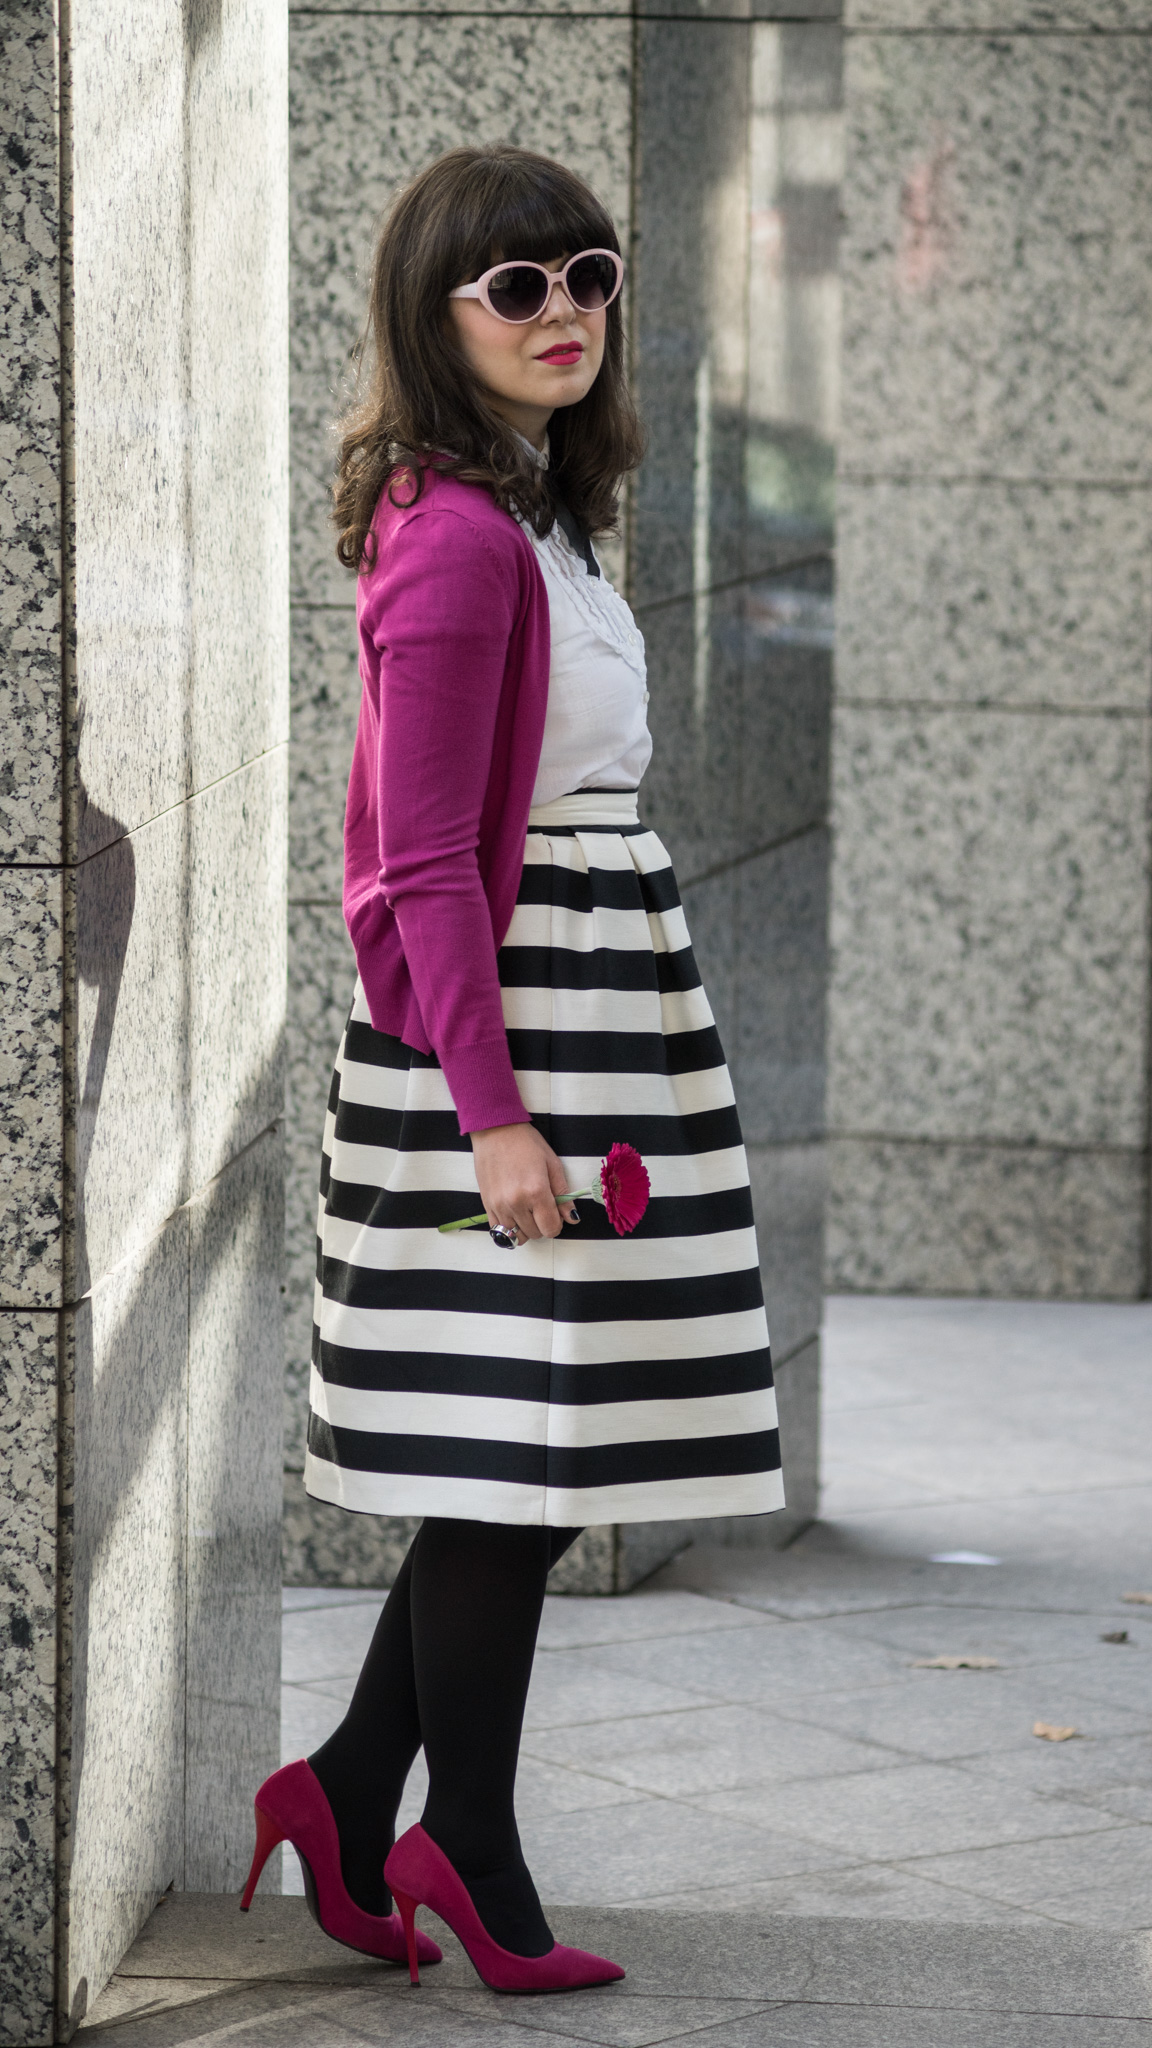 black & white outfit with stripes and pops of pink and fuchsia white shirt black bow tie fuchsia shoes heels sweater C&A striped midi skirt stripes pink thrifted trench black clutch pink cat eye glasses